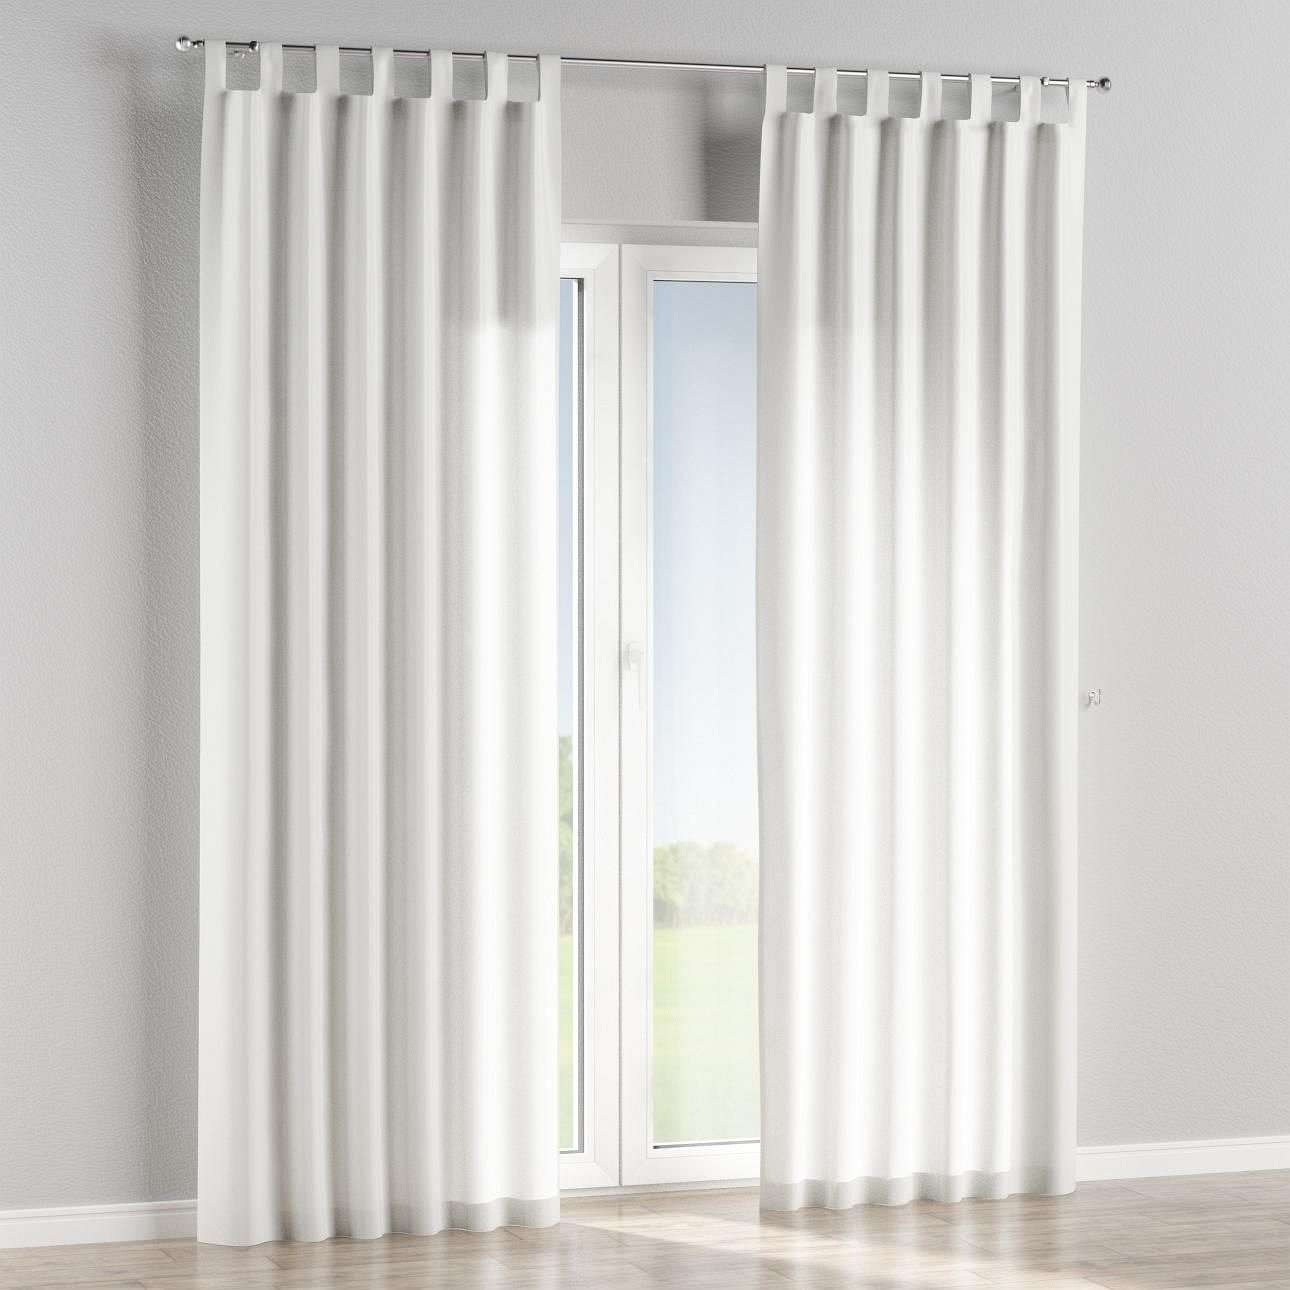 Tab top curtains in collection Nordic, fabric: 630-12